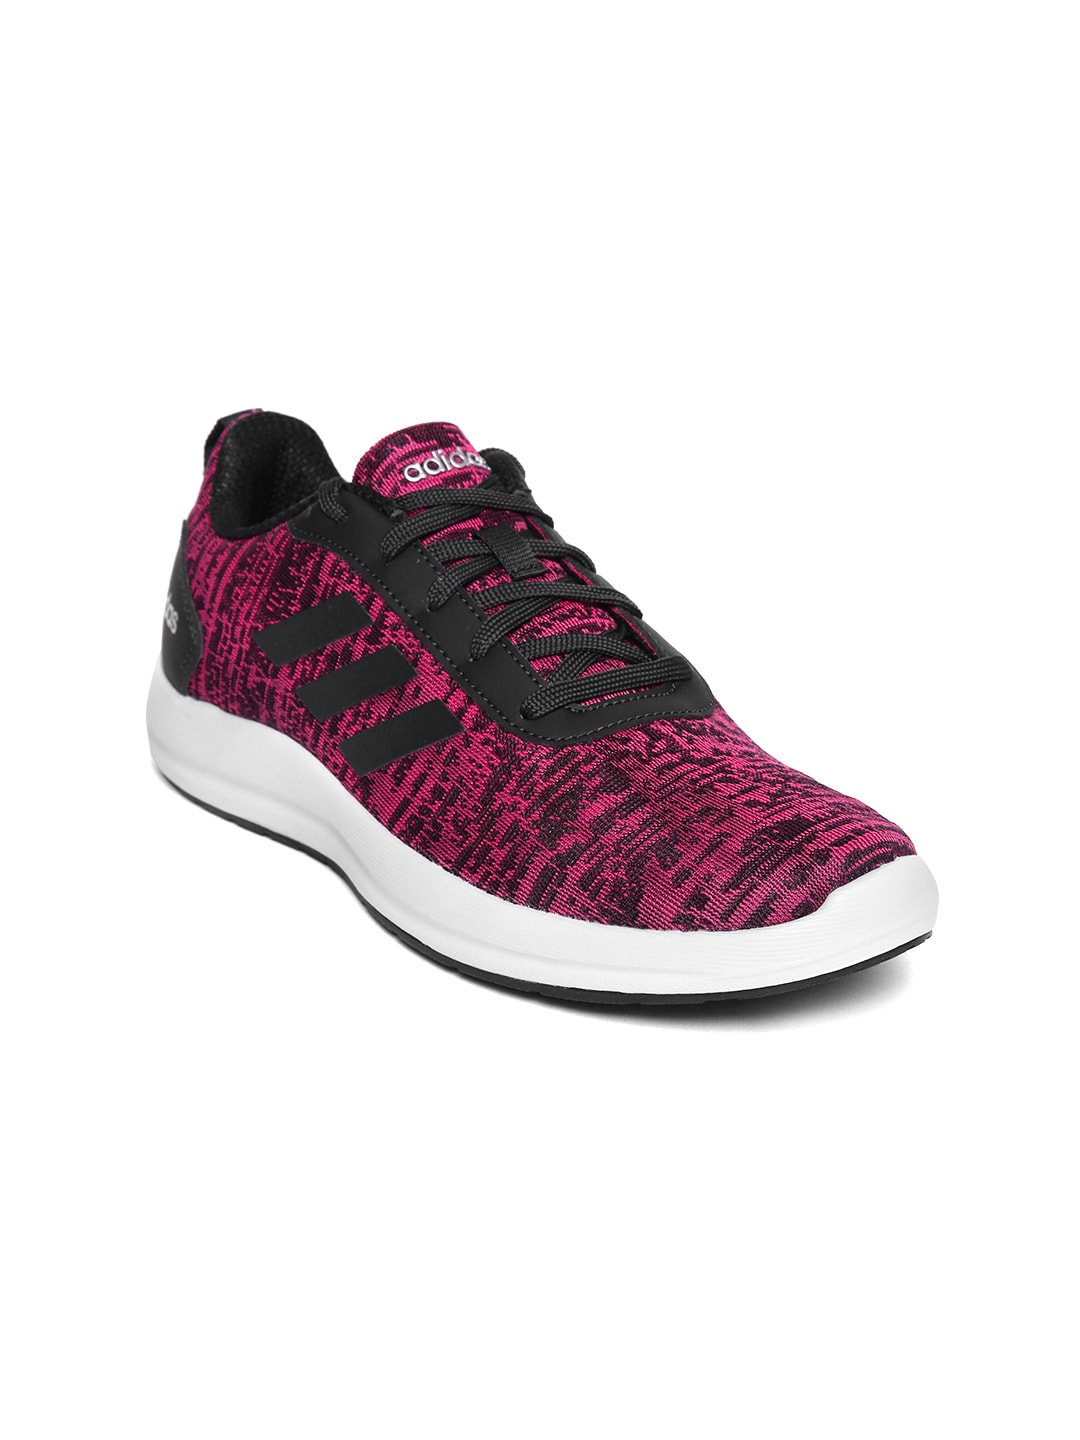 In Buy Women Sports Shoes Adidas Online AOqfv